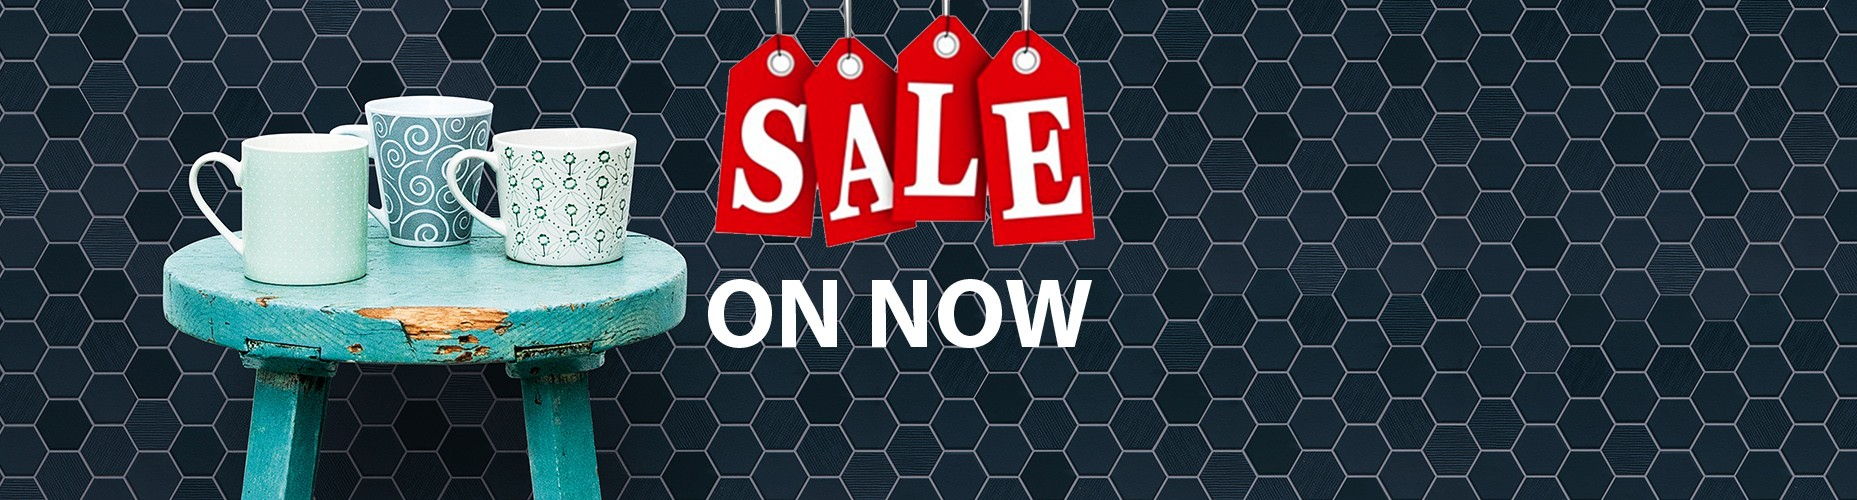 20-50% OFF ALL TILES